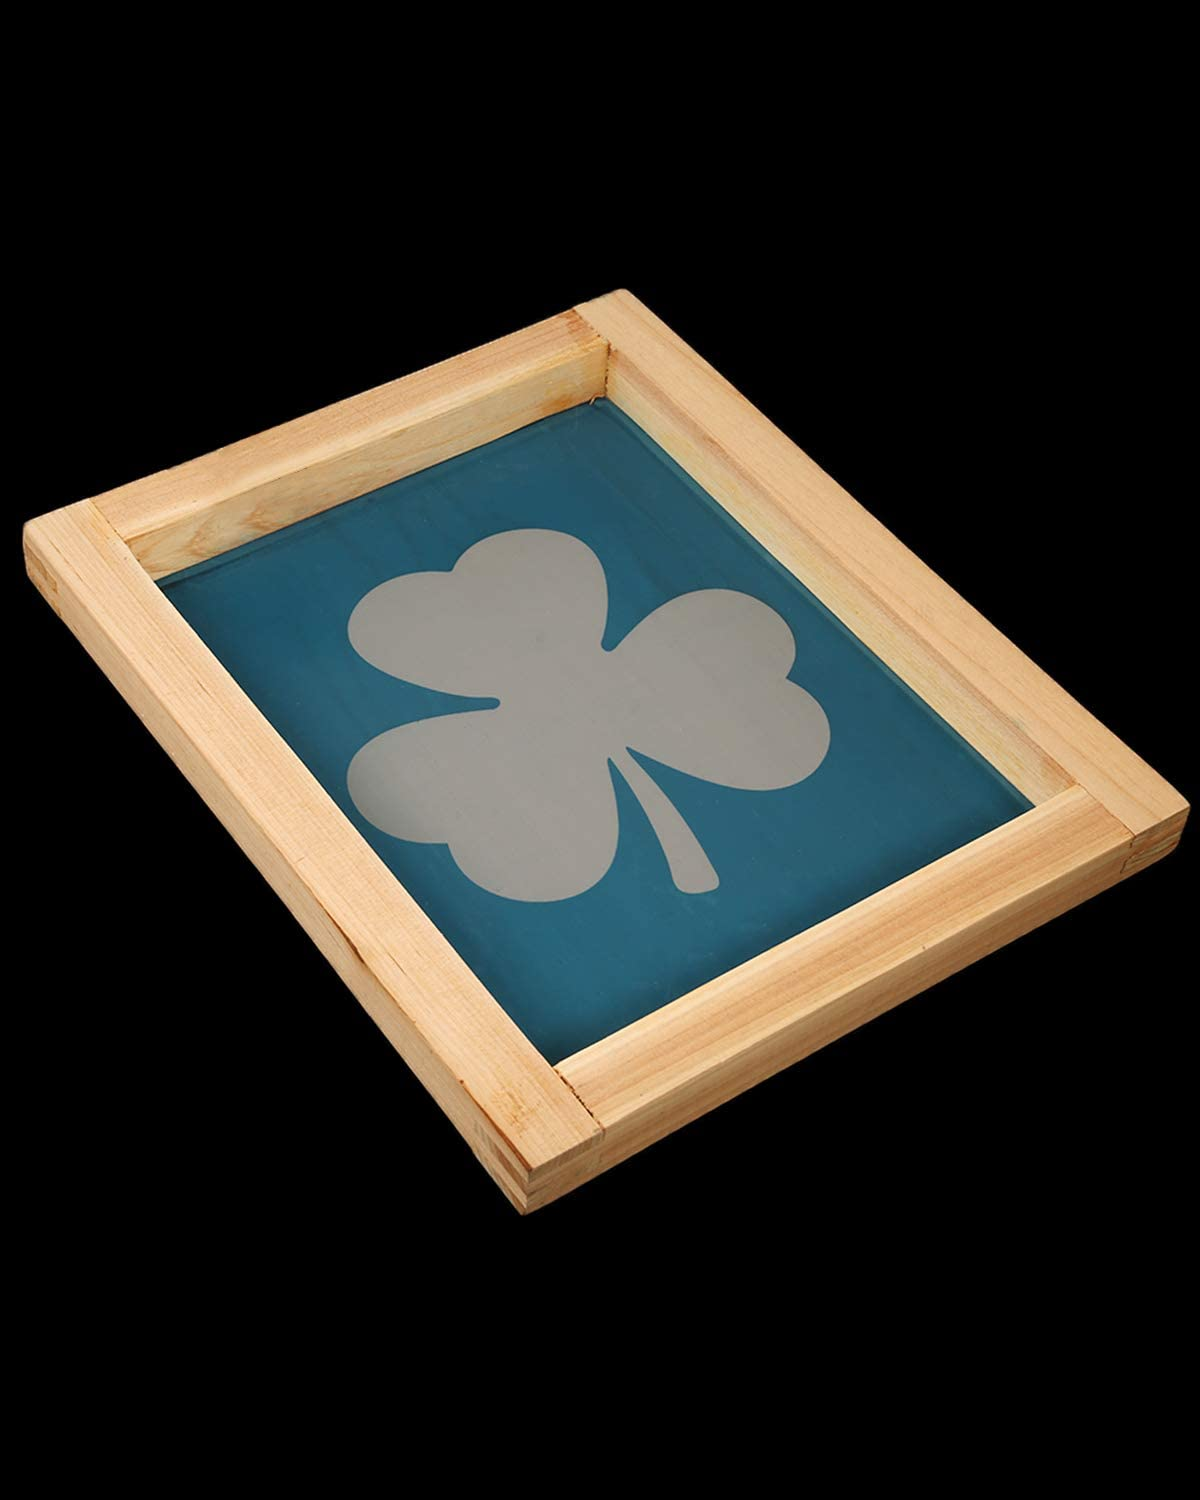 Pllieay 8 x 10 Inch Wood Screen Printing Frame with Shamrock Pattern and Plastic Scraper for St.Patrick T-Shirt Screen Printing